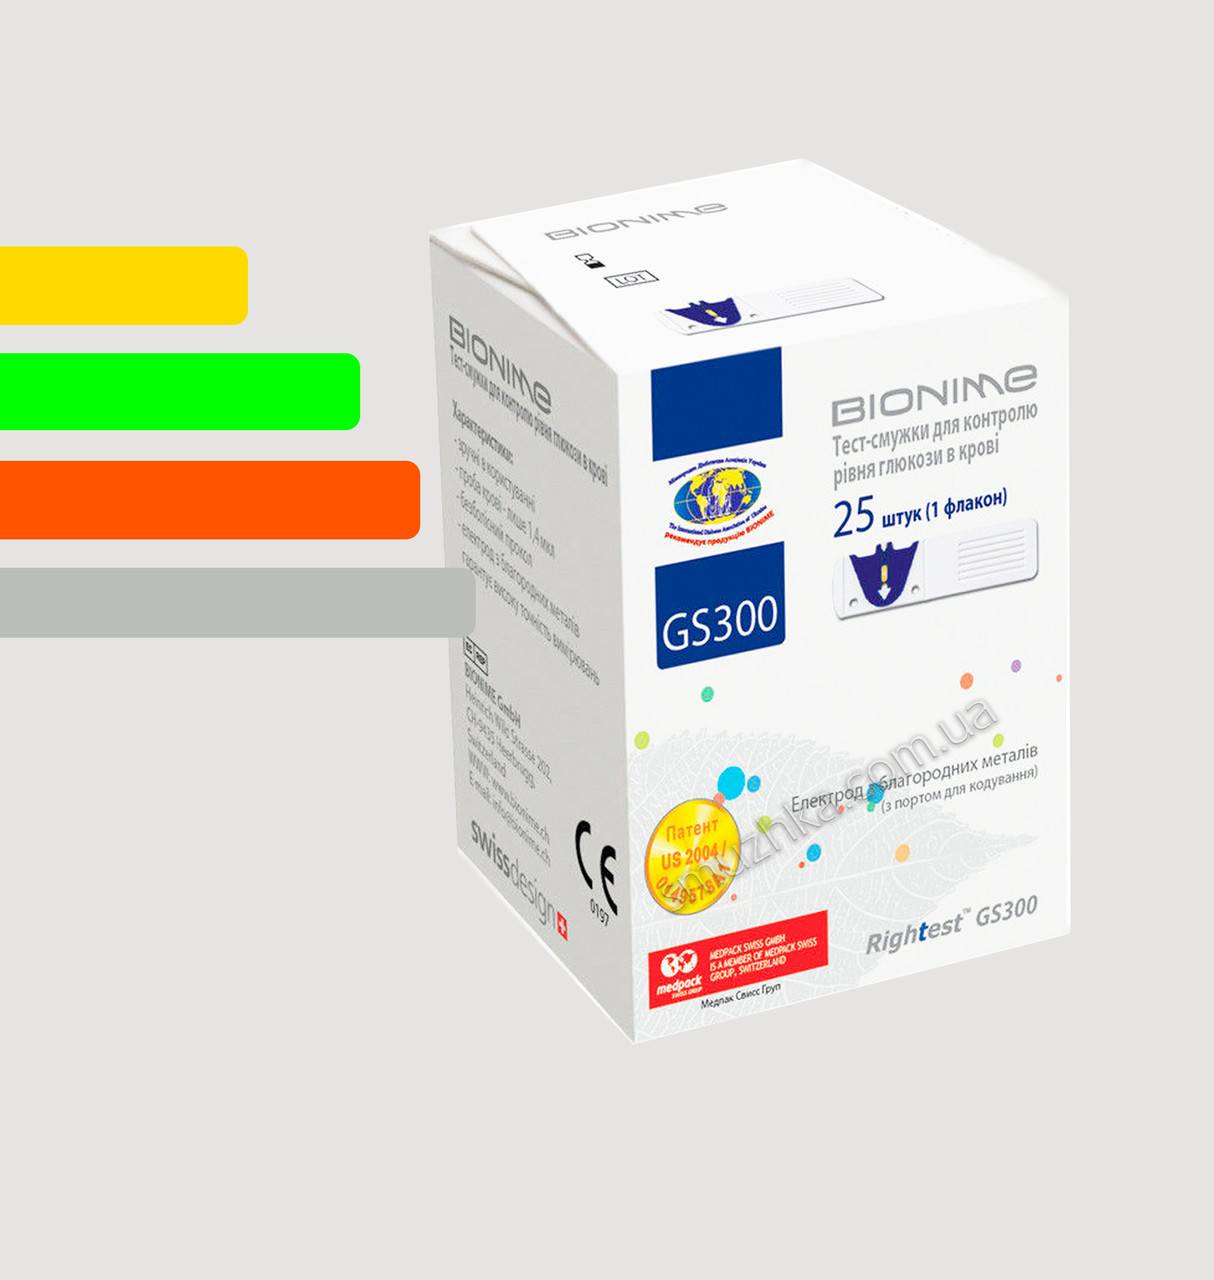 Тест полоски для глюкометра Бионайм GM110,GM300 - Bionime Rightest GS300 #25